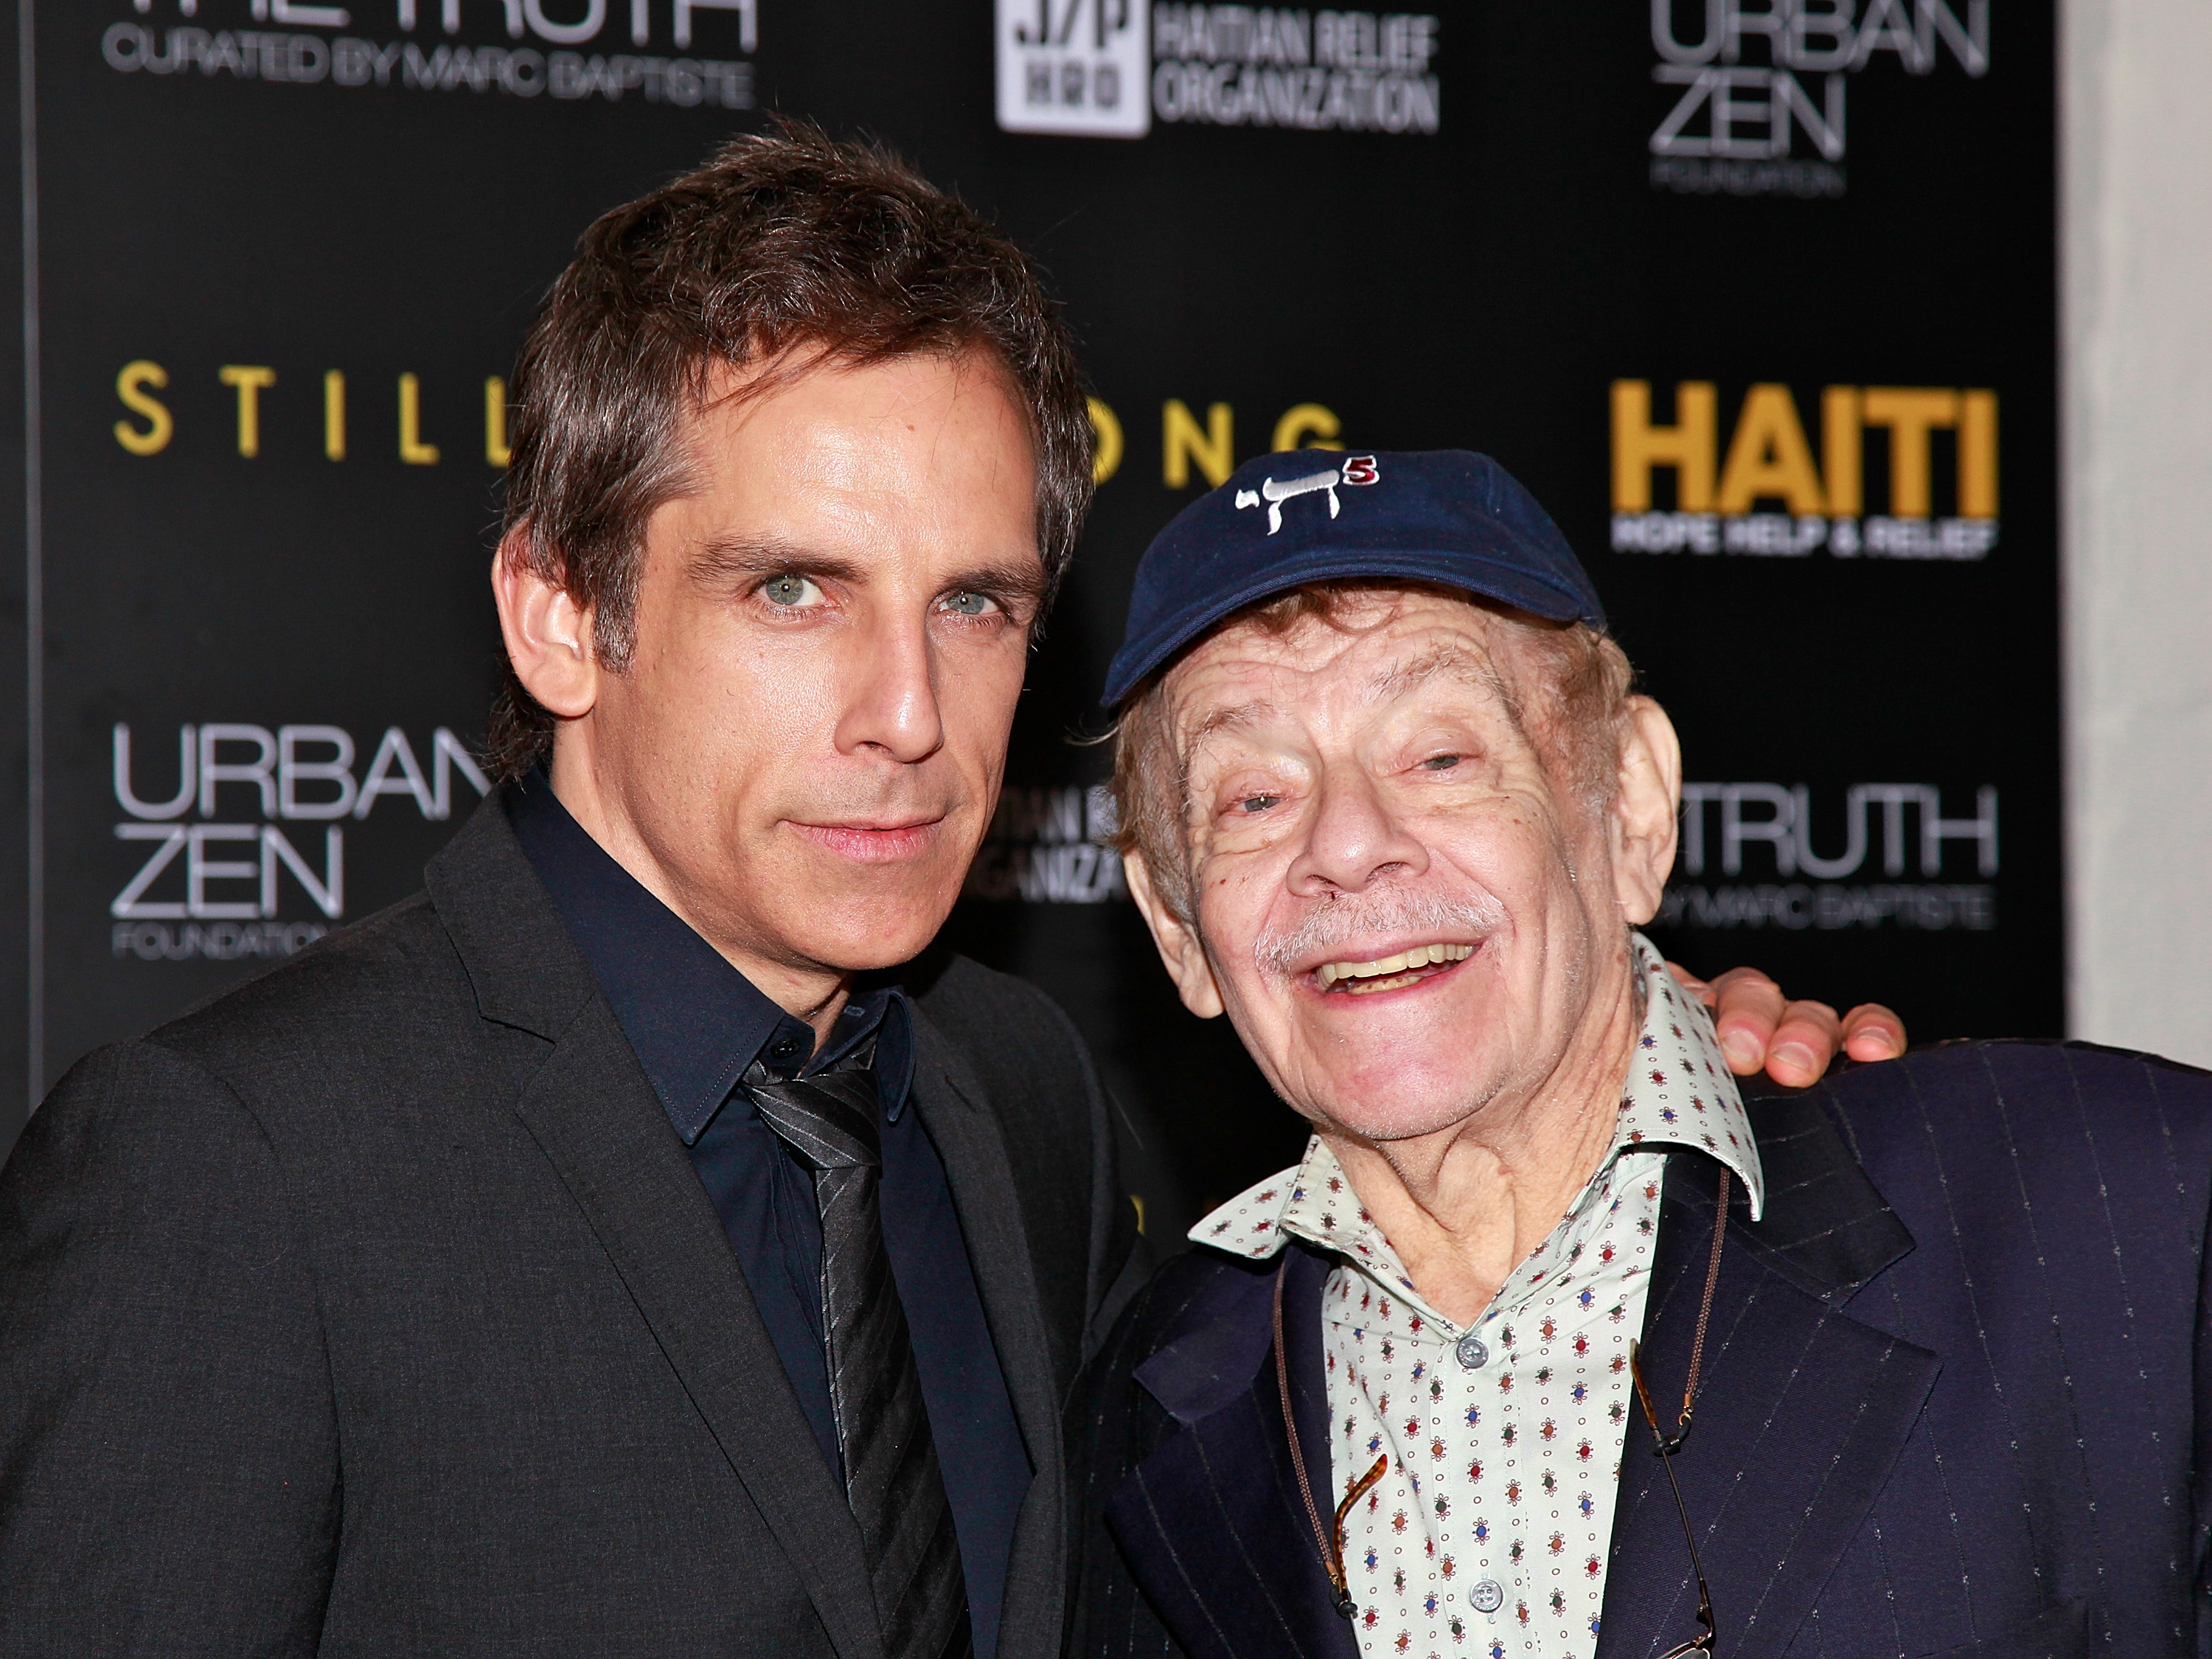 Ben Stiller on Dad Jerry Stiller: 'He Never Stopped Being Amazed' by His Success